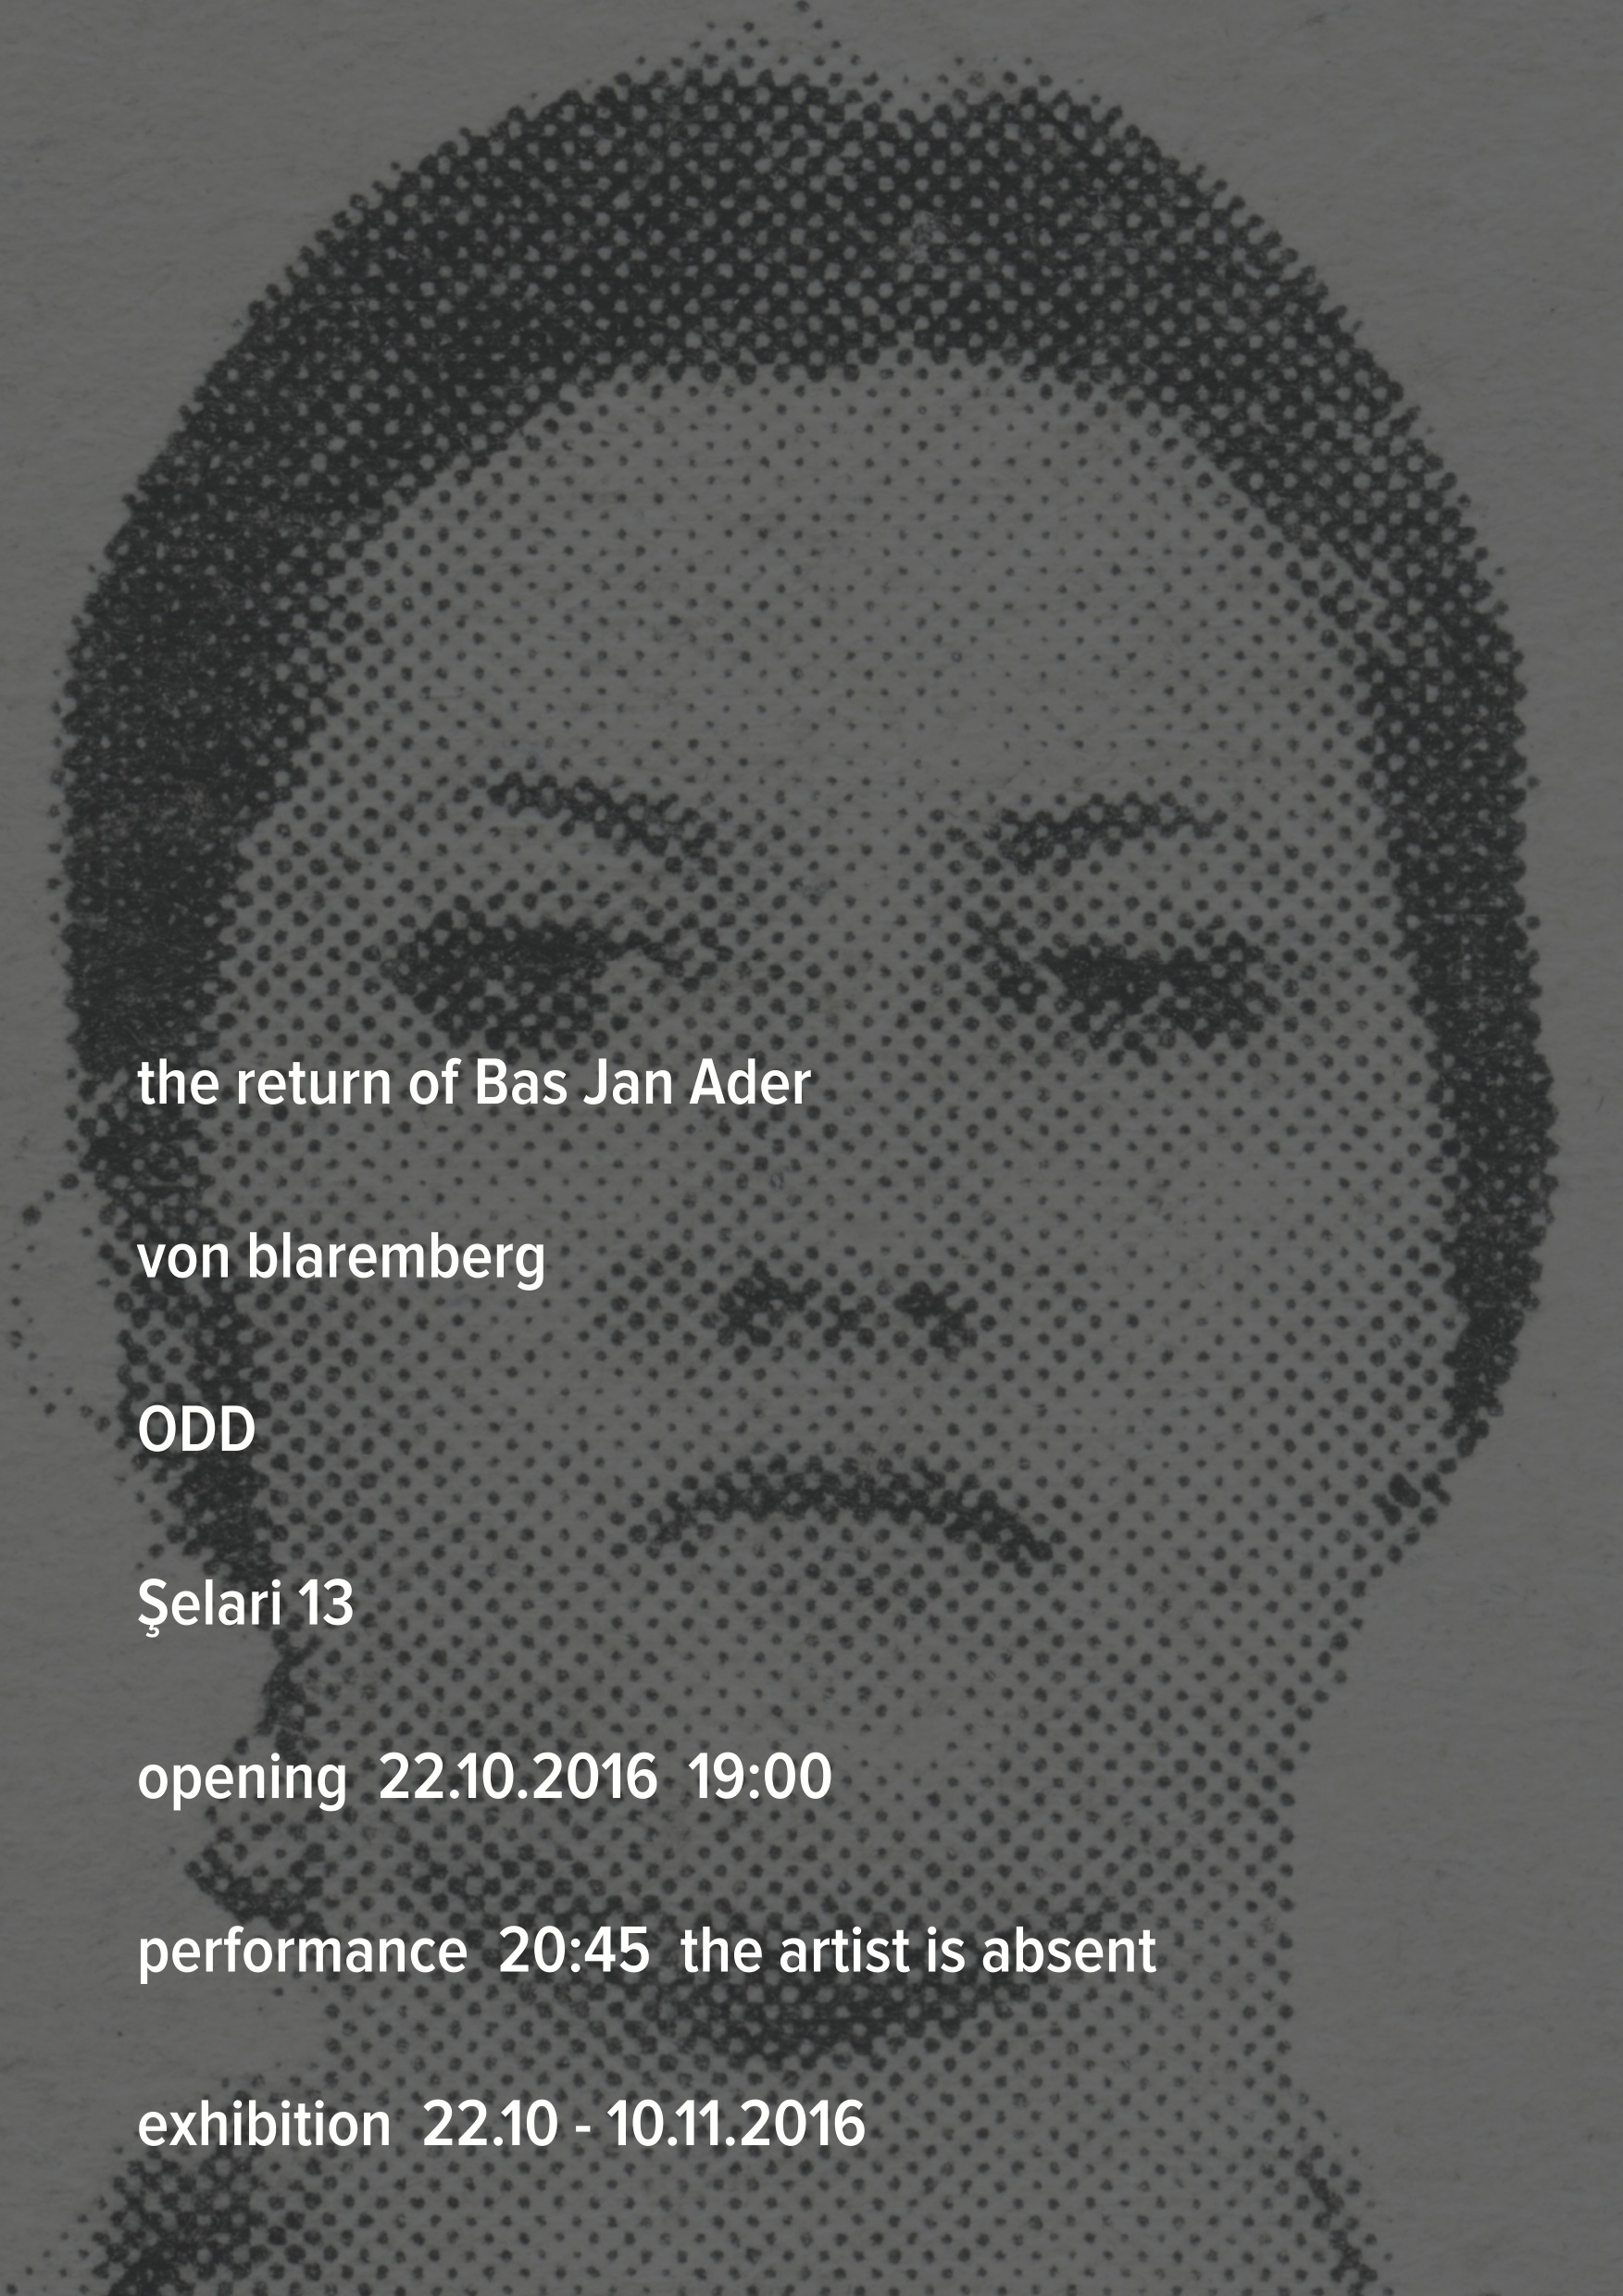 the-return-of-bas-jan-ader-fq-no-bleed